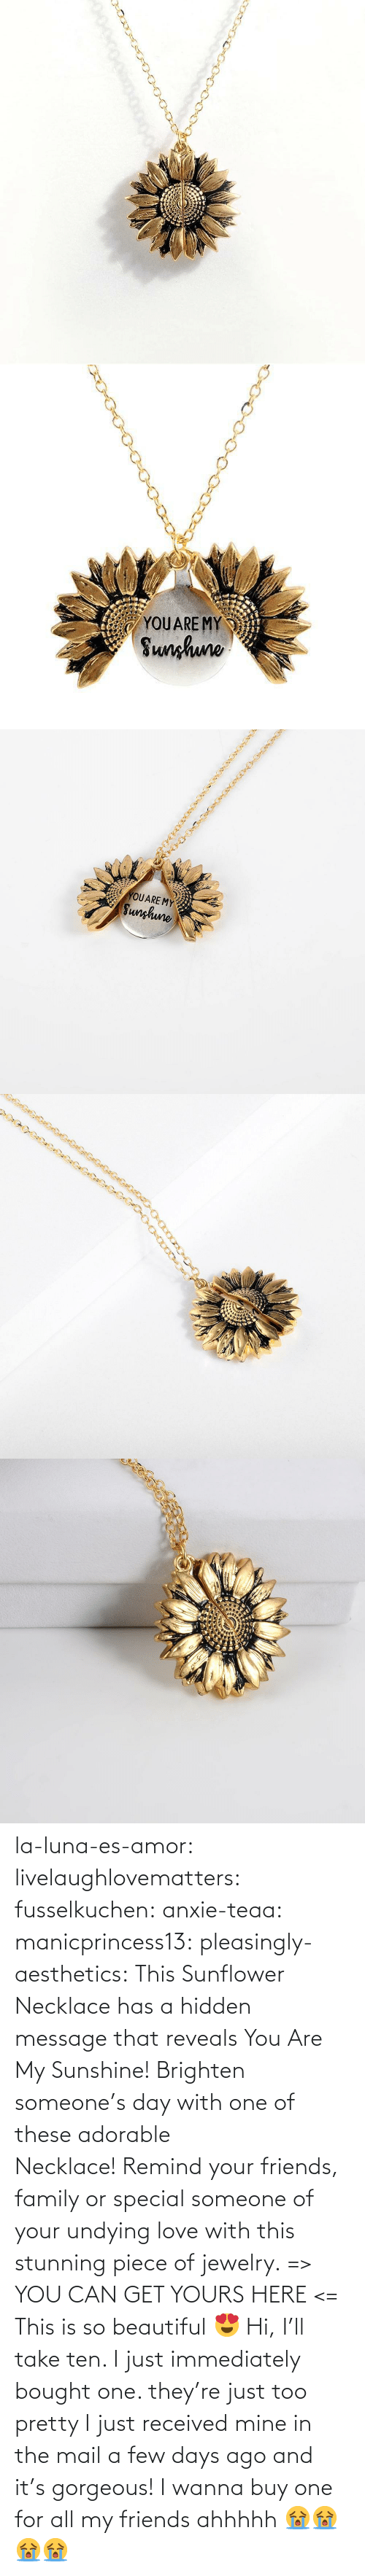 hidden: YOUARE MY  Sunhuno   YOUARE MY  Sunghune la-luna-es-amor: livelaughlovematters:  fusselkuchen:  anxie-teaa:   manicprincess13:   pleasingly-aesthetics:  This Sunflower Necklace has a hidden message that reveals You Are My Sunshine! Brighten someone's day with one of these adorable Necklace! Remind your friends, family or special someone of your undying love with this stunning piece of jewelry. => YOU CAN GET YOURS HERE <=   This is so beautiful 😍    Hi, I'll take ten.    I just immediately bought one. they're just too pretty   I just received mine in the mail a few days ago and it's gorgeous!   I wanna buy one for all my friends ahhhhh 😭😭😭😭